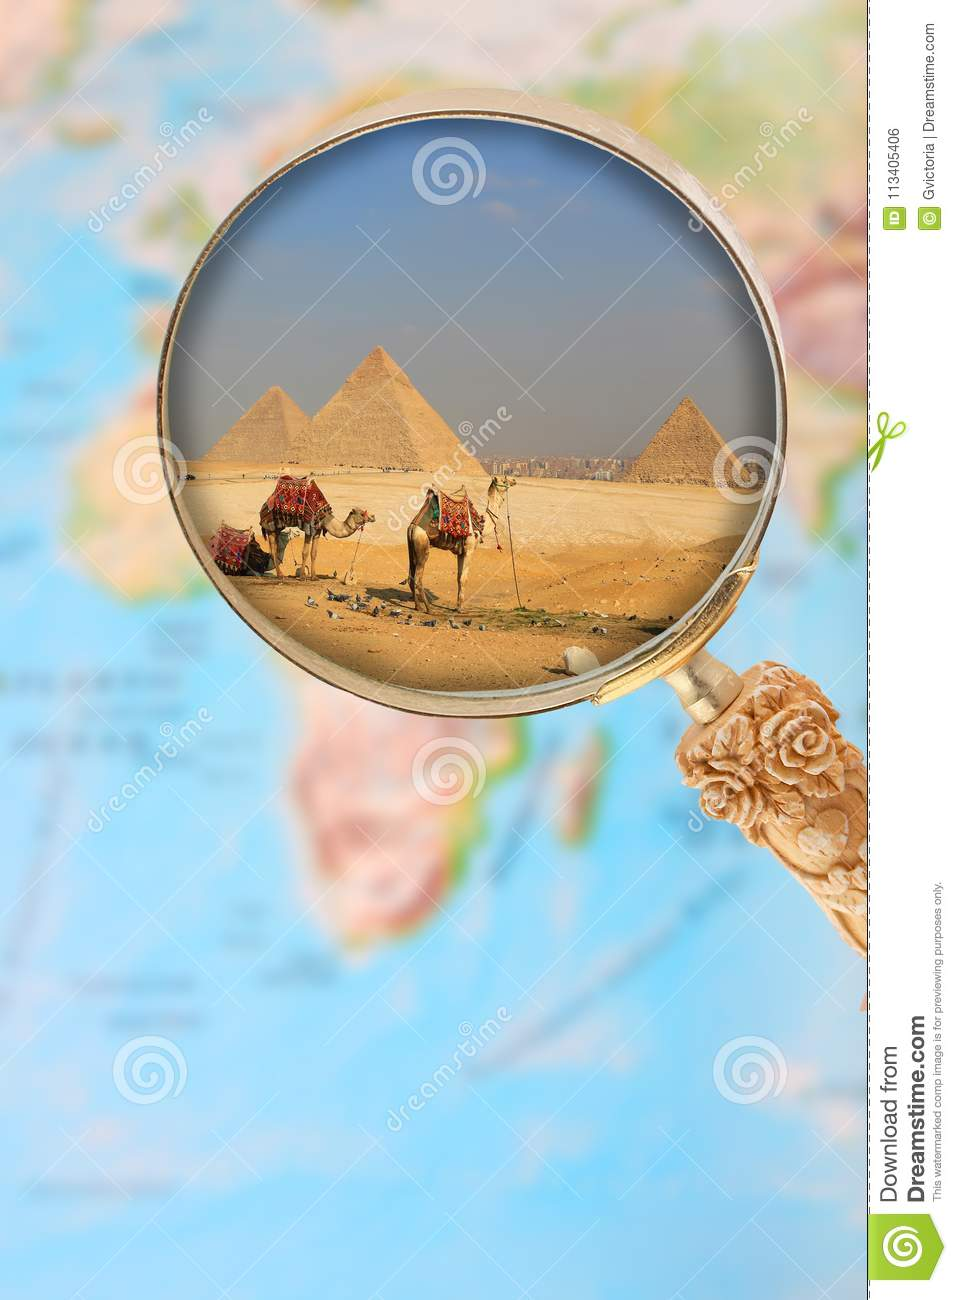 Pyramids In Egypt Map.The Pyramids Of Egypt Africa Stock Photo Image Of Menkaure Khufu